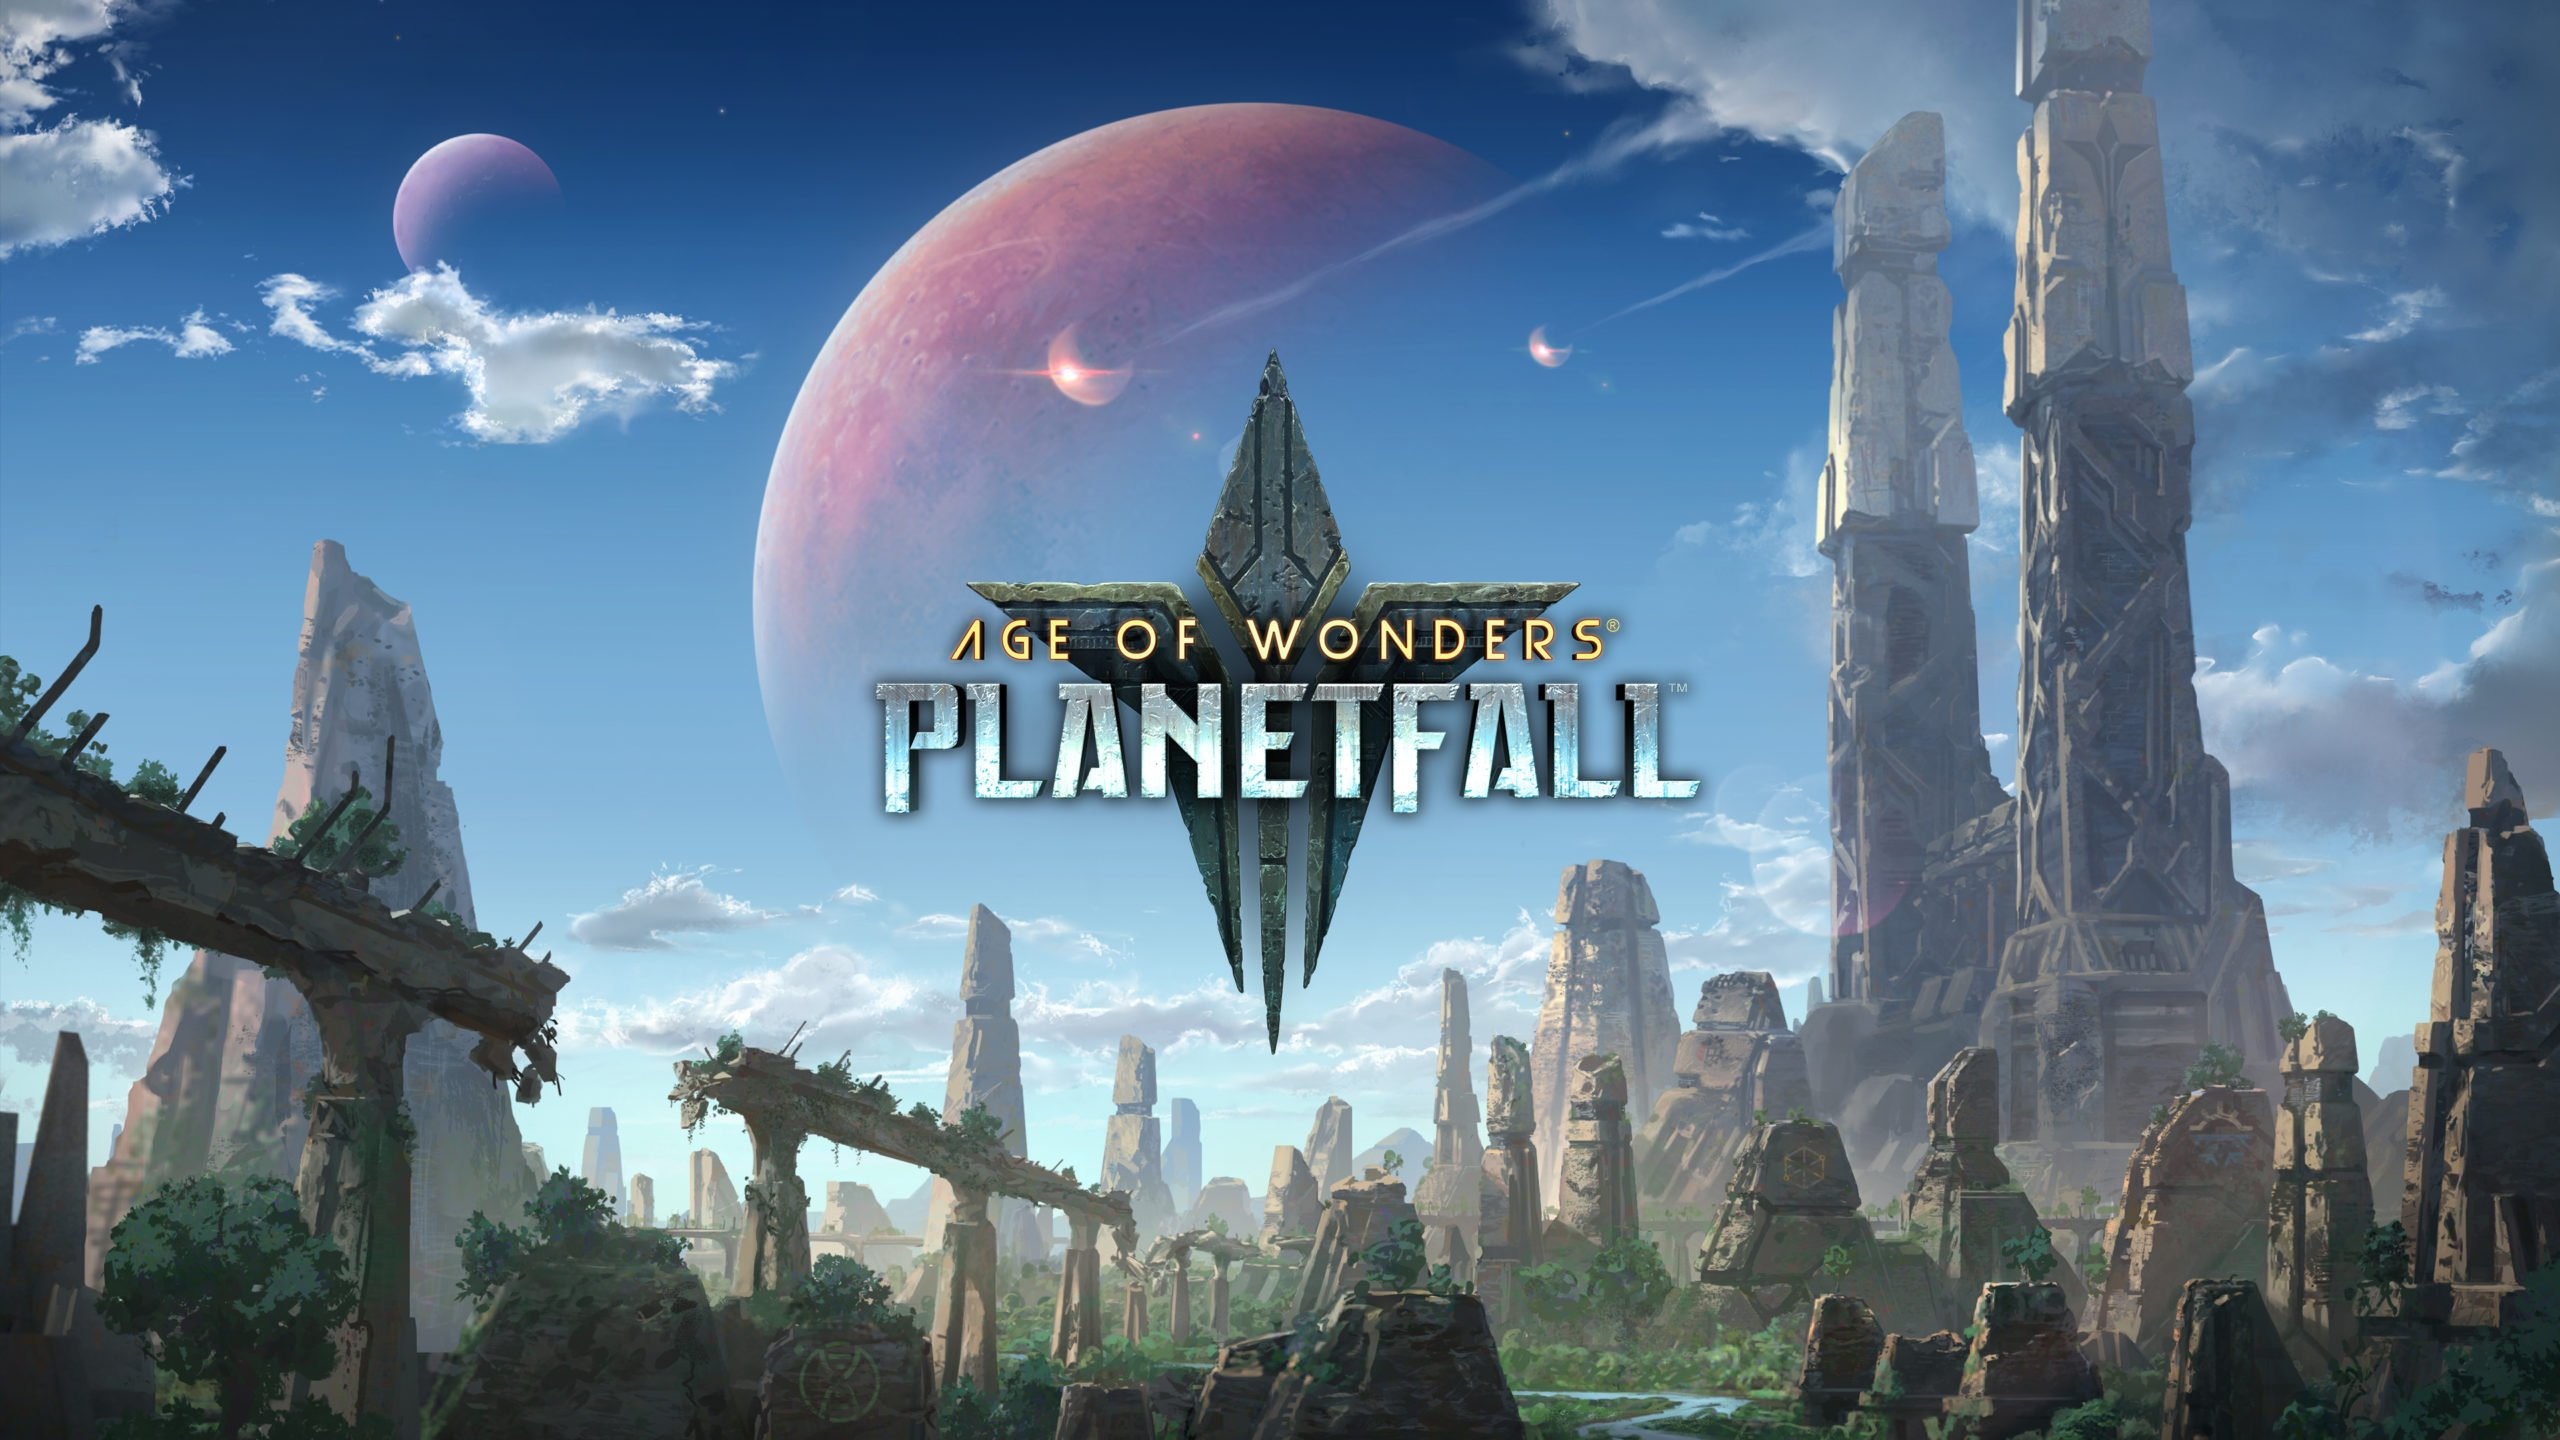 Age_Of_Wonders_Planetfall_Wallpaper_PLANETFALL